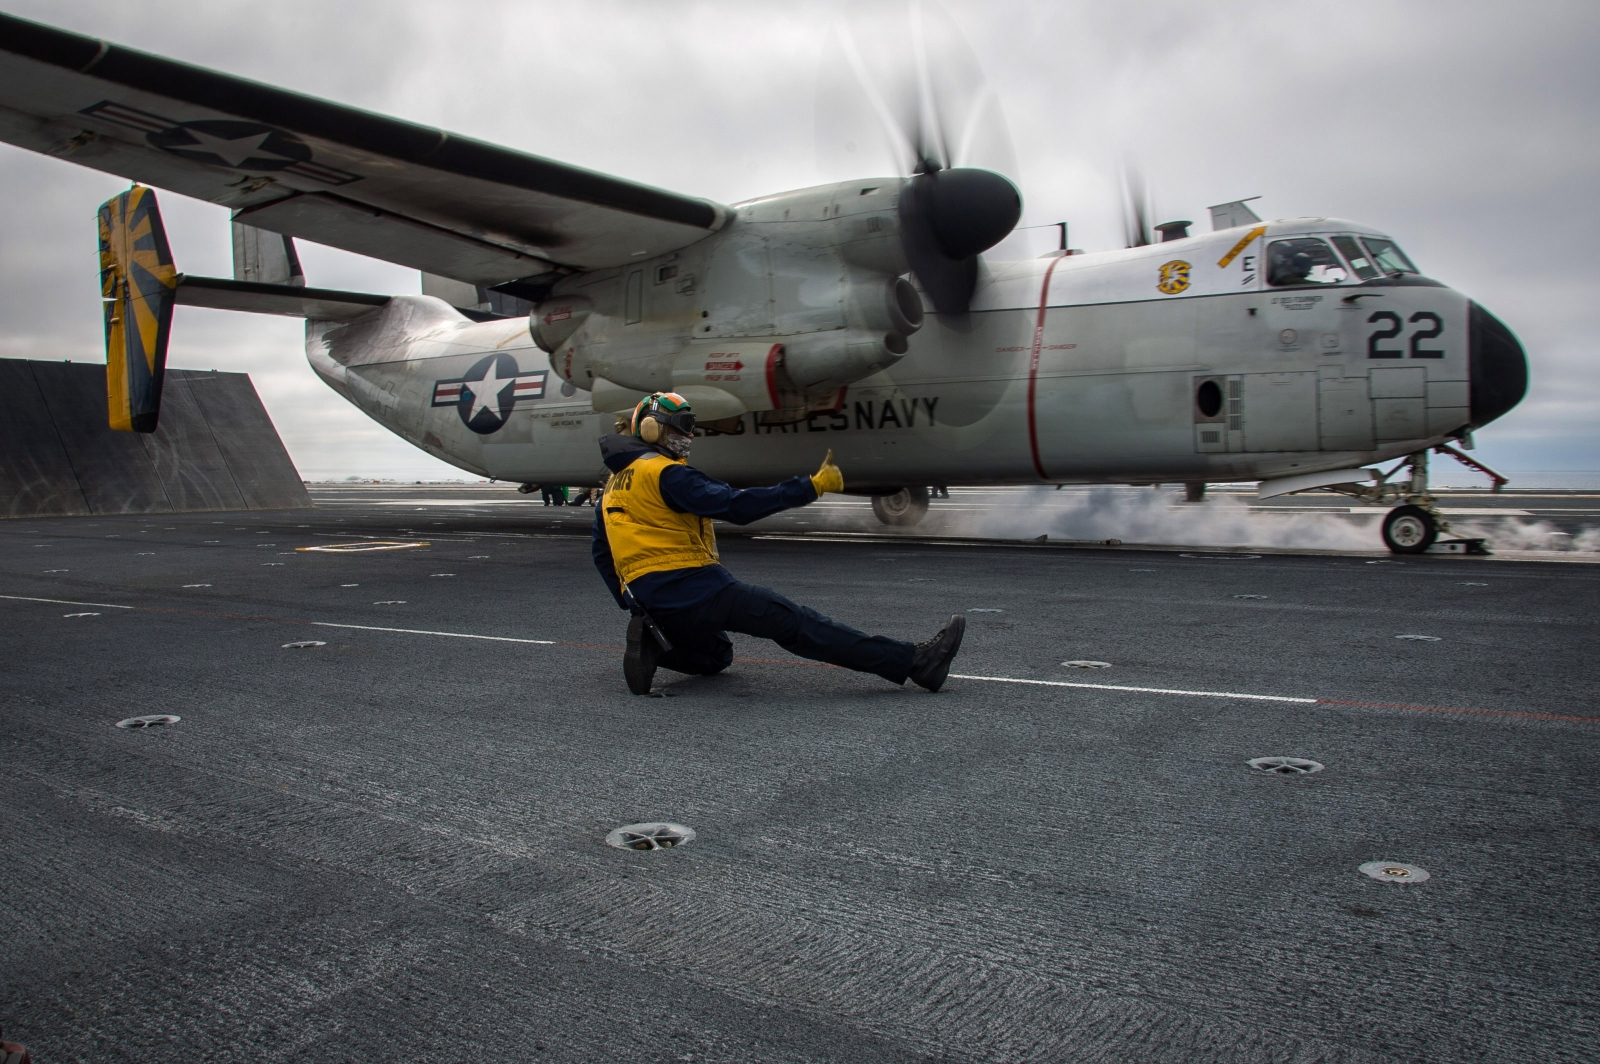 us navy plans to recover aircraft that crashed into